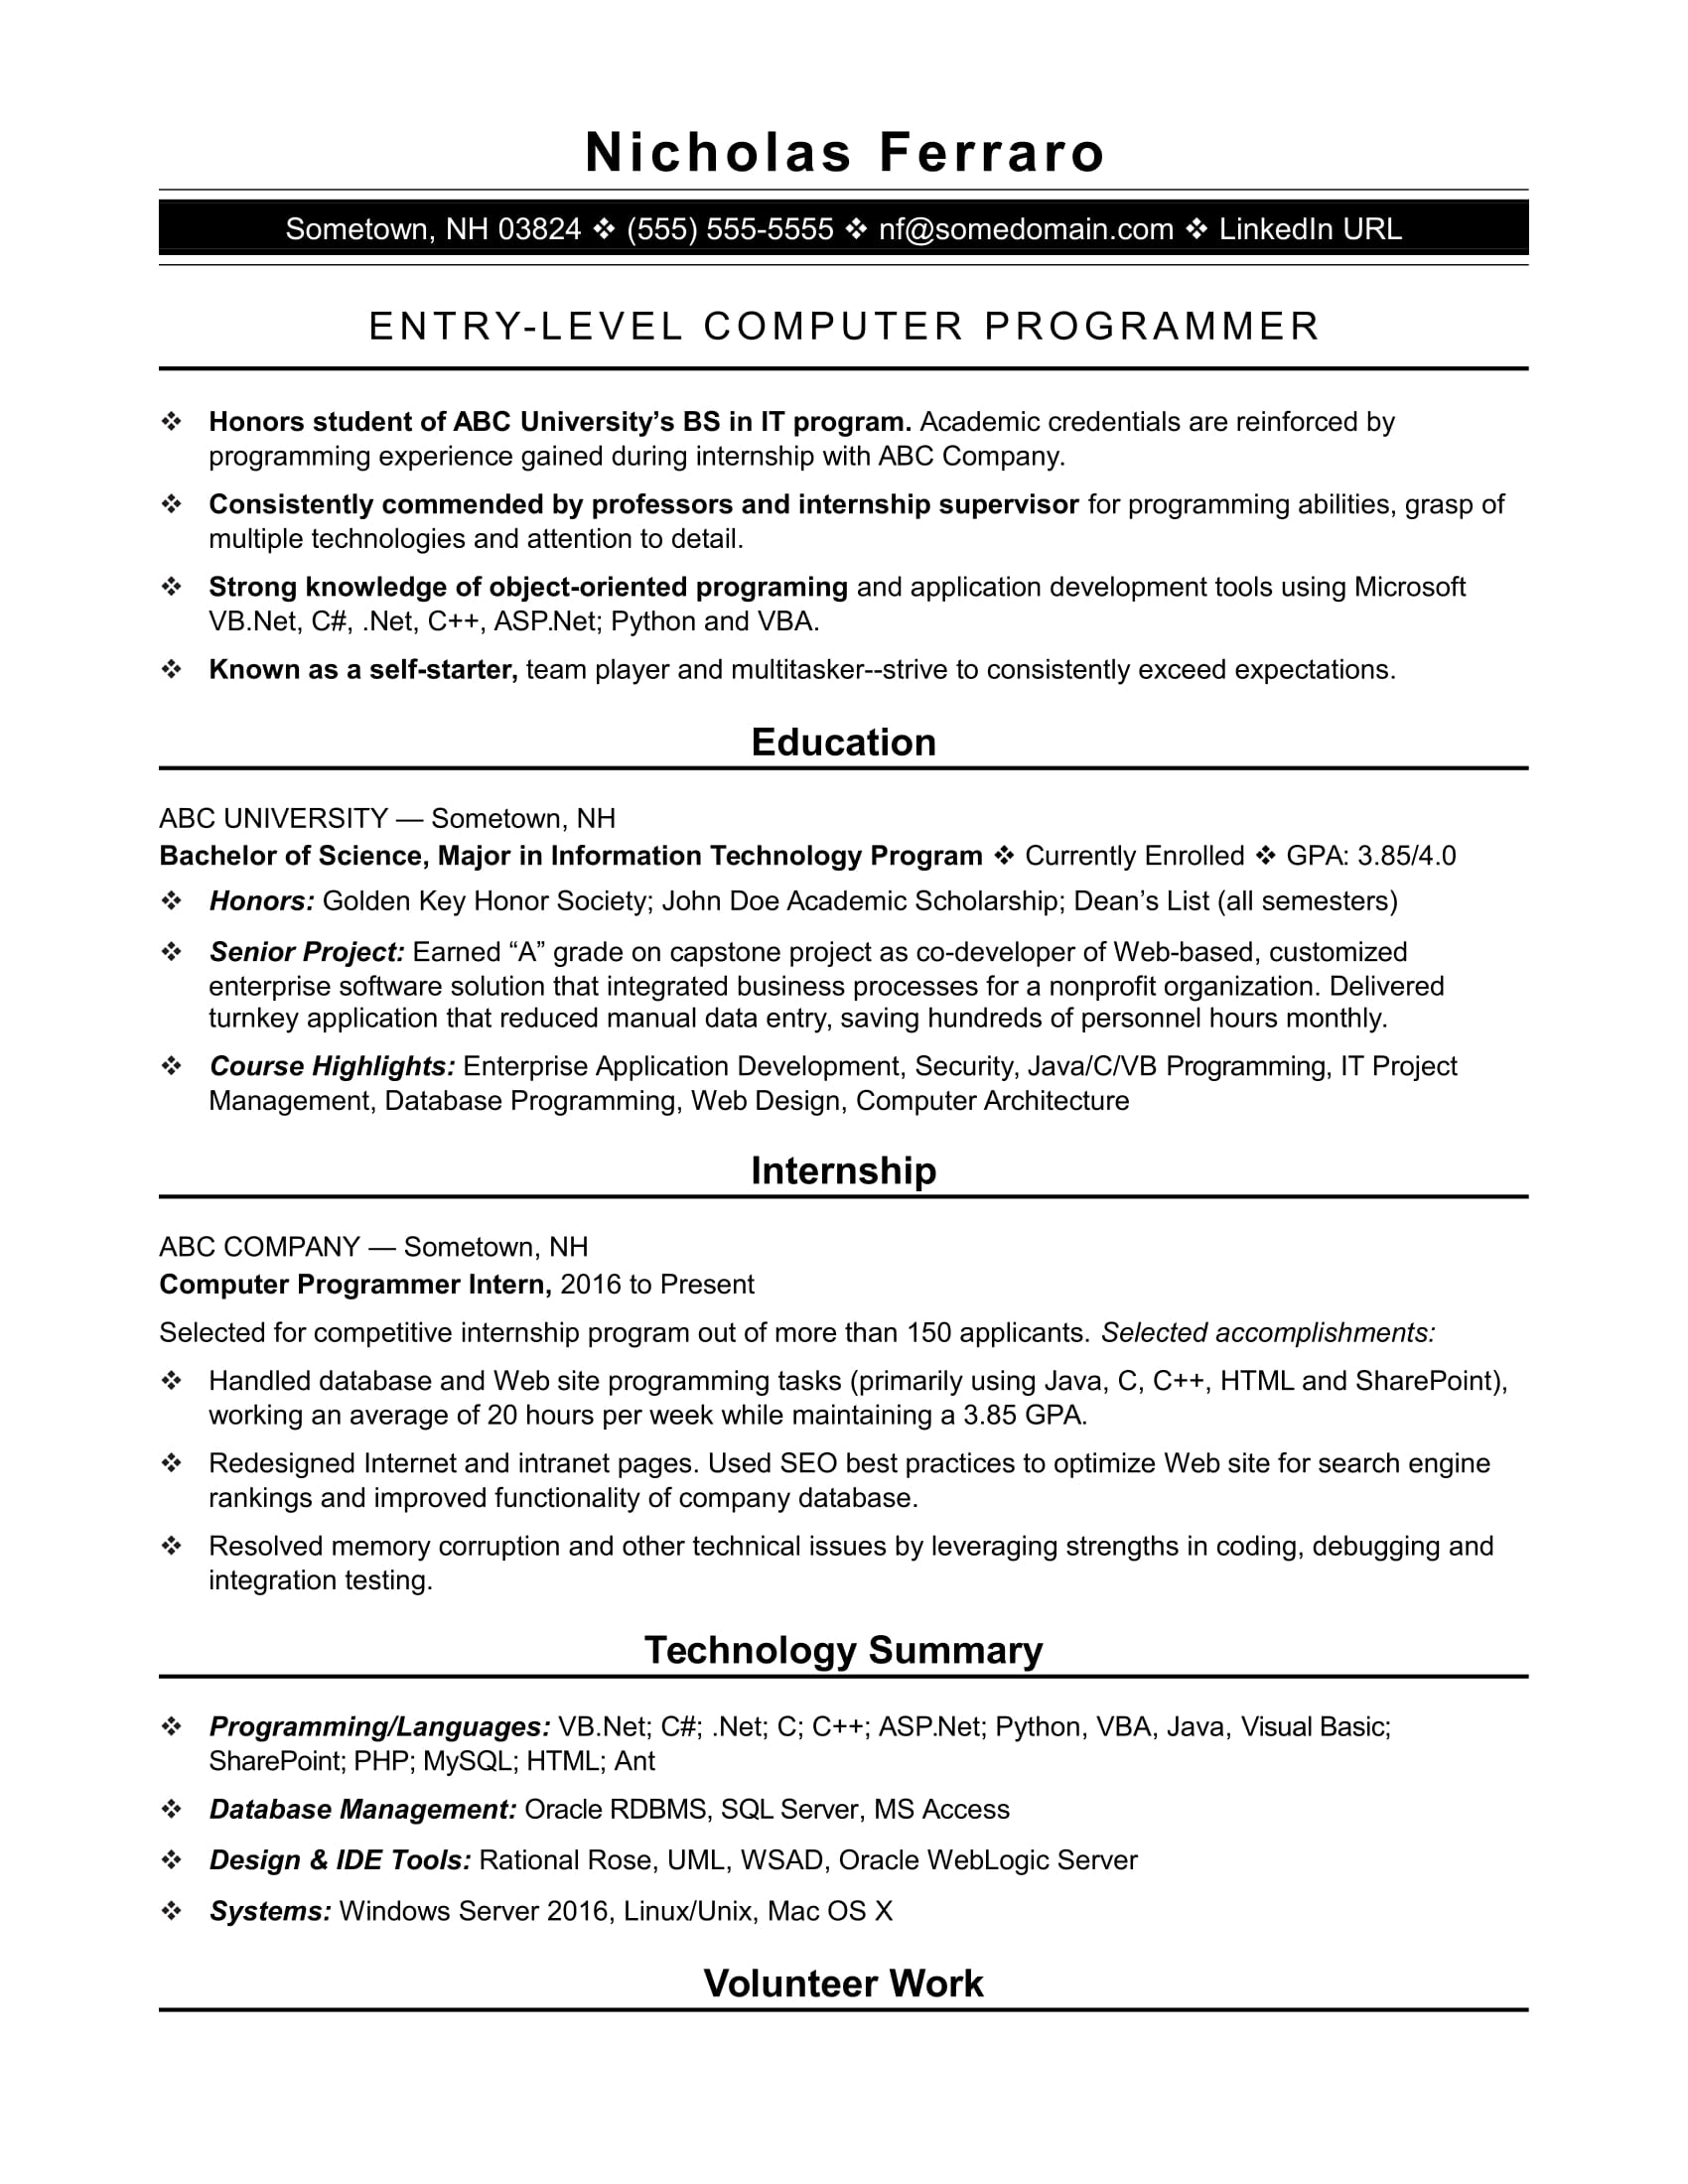 Sample Resume For Experienced Lecturer In Computer Science Sample Resume For An Entry Level Computer Programmer